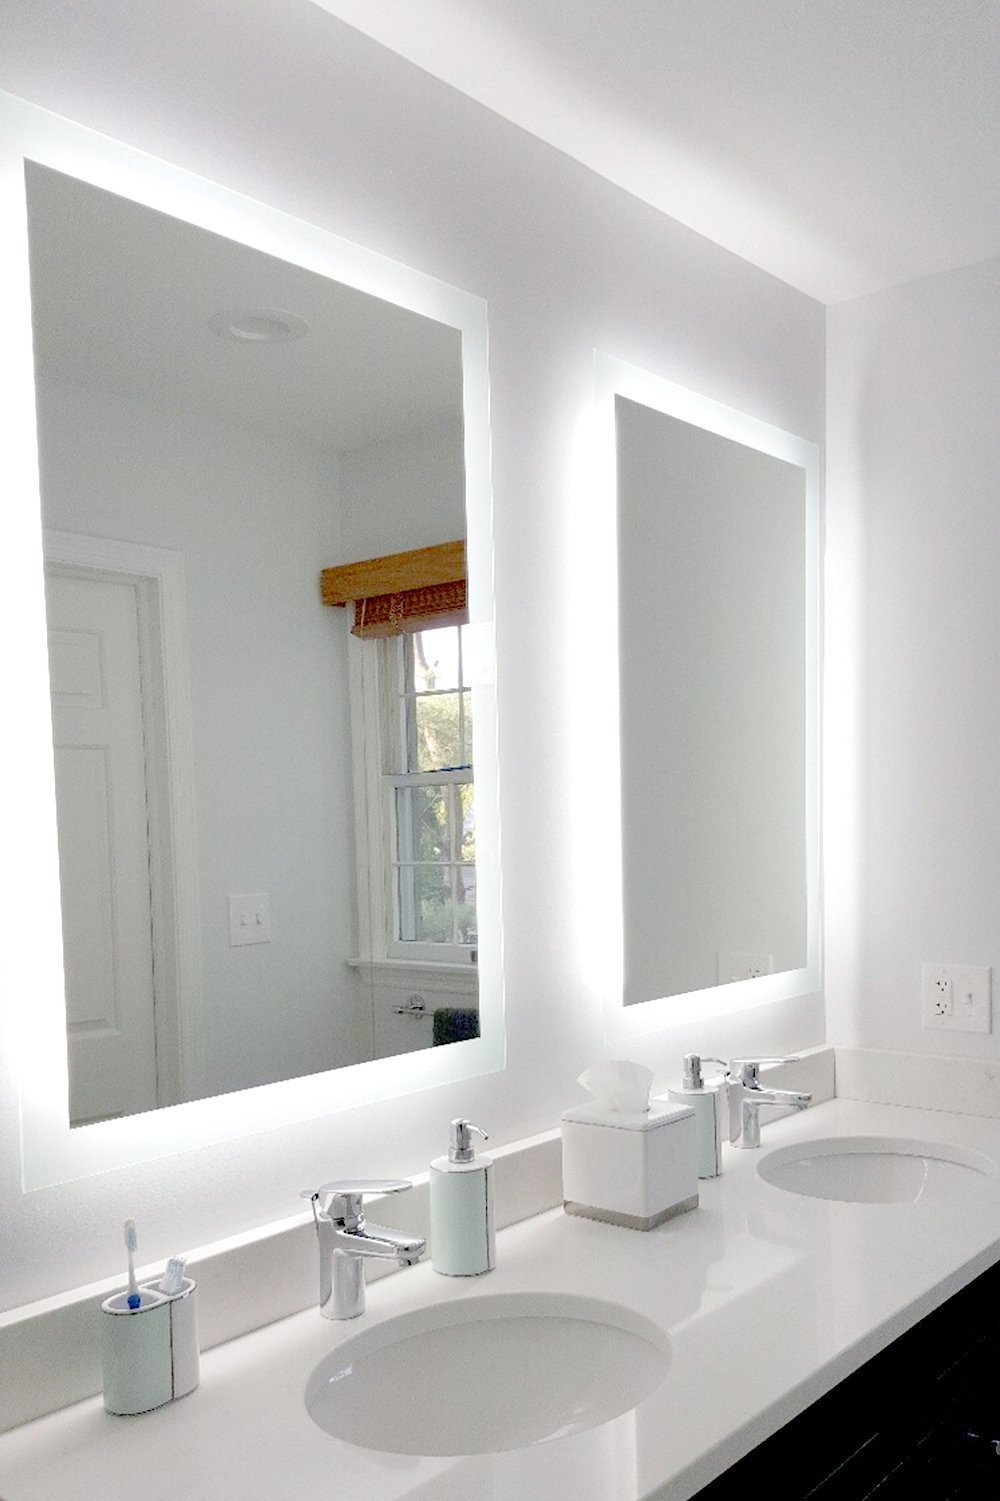 Vanity Mirror with Light for Bedroom Inspirational Side Lighted Led Bathroom Vanity Mirror 24quot X 36 with